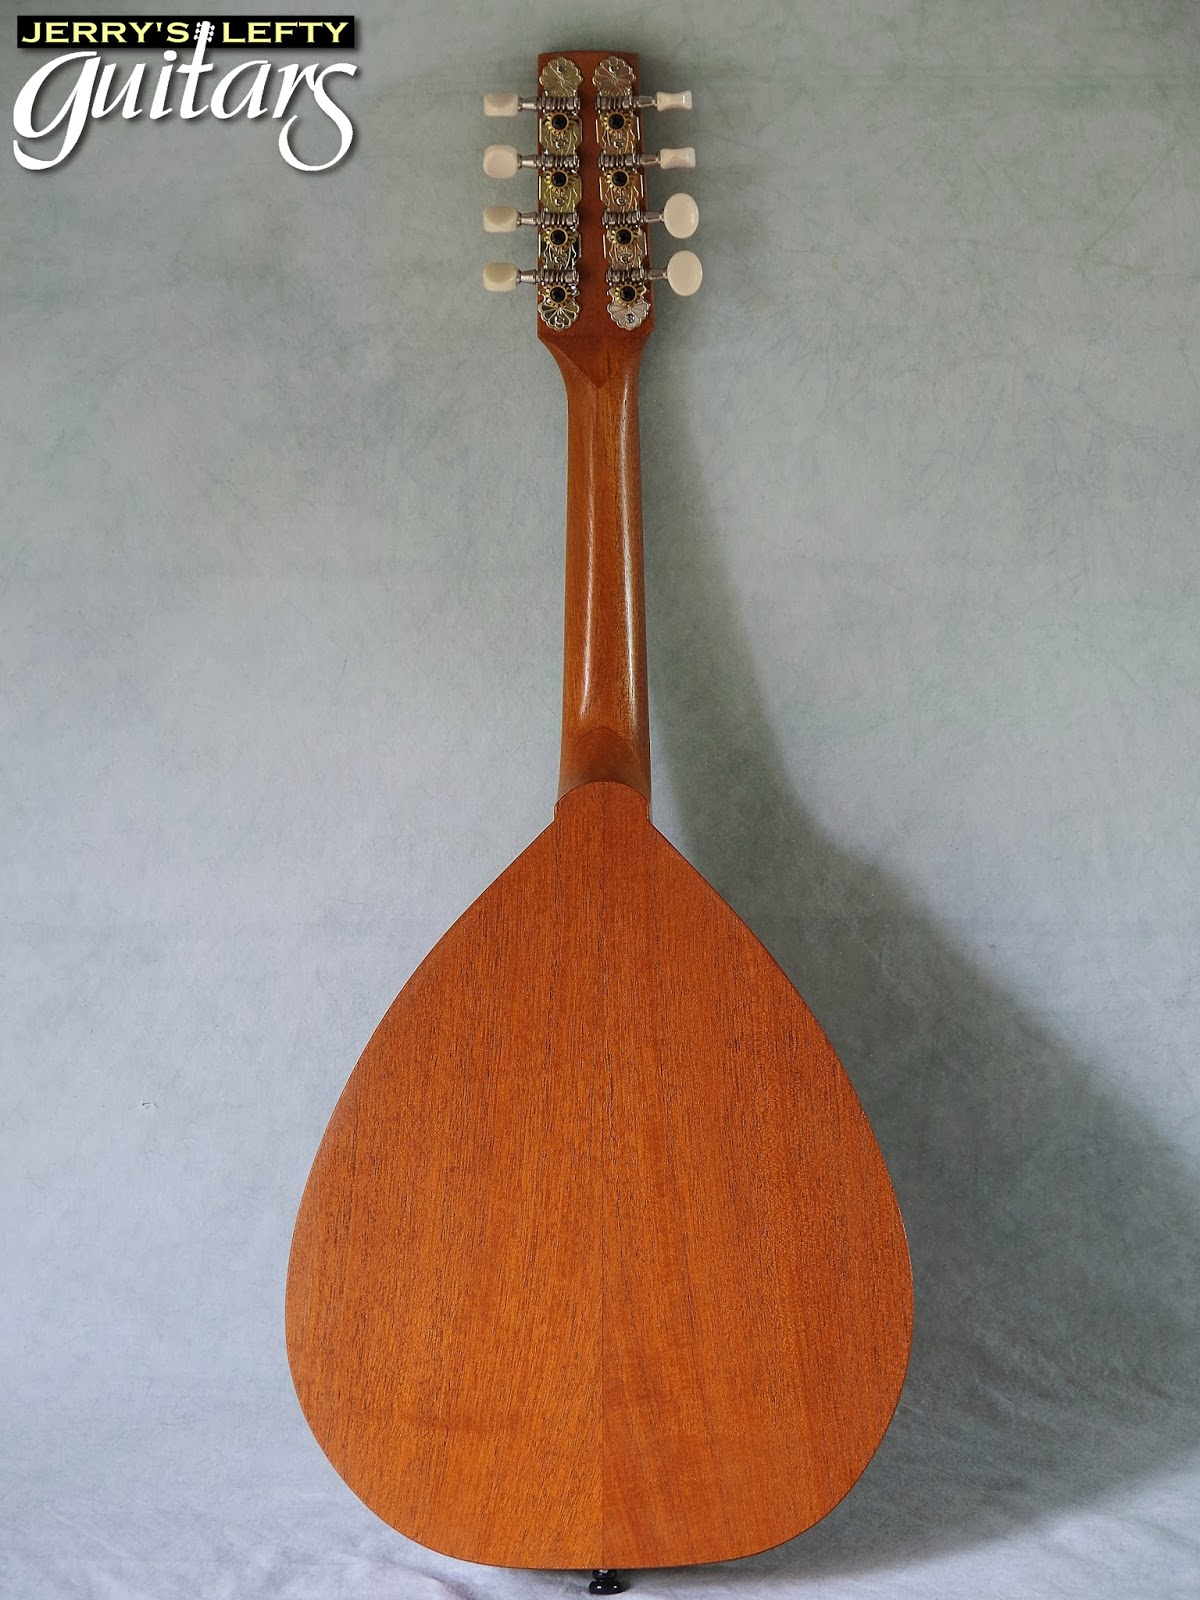 Jerryu0026#39;s Lefty Guitars newest guitar arrivals. Updated weekly!: Big Muddy used left handed ...